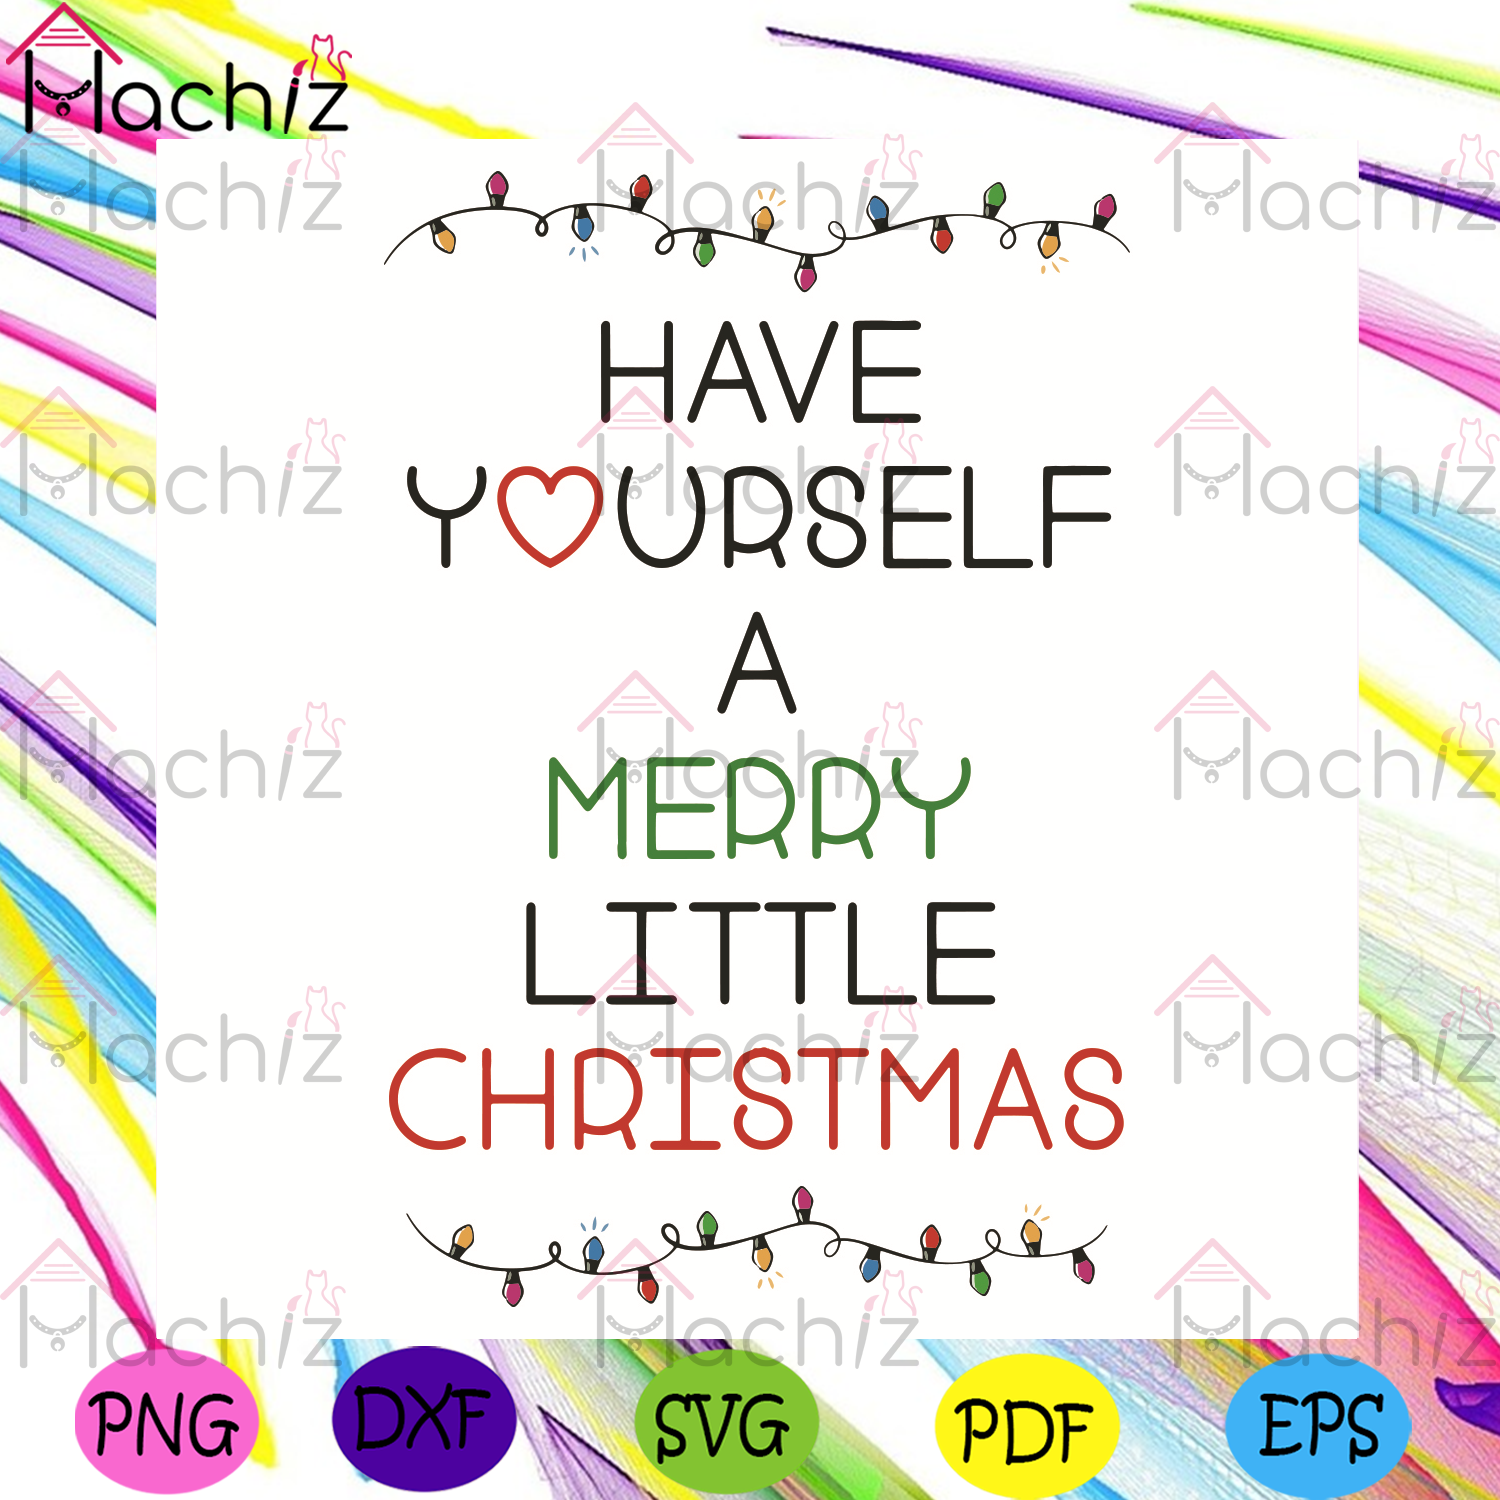 Have Yourself A Merry Little Christmas Svg, Christmas Svg, Merry Christmas Svg, Christmas Lights Svg, Christmas Gifts Svg, Christmas Day Svg, Merry Christmas Svg, Christmas Holiday Svg, Love Yourself Svg, Christmas Quotes Svg,